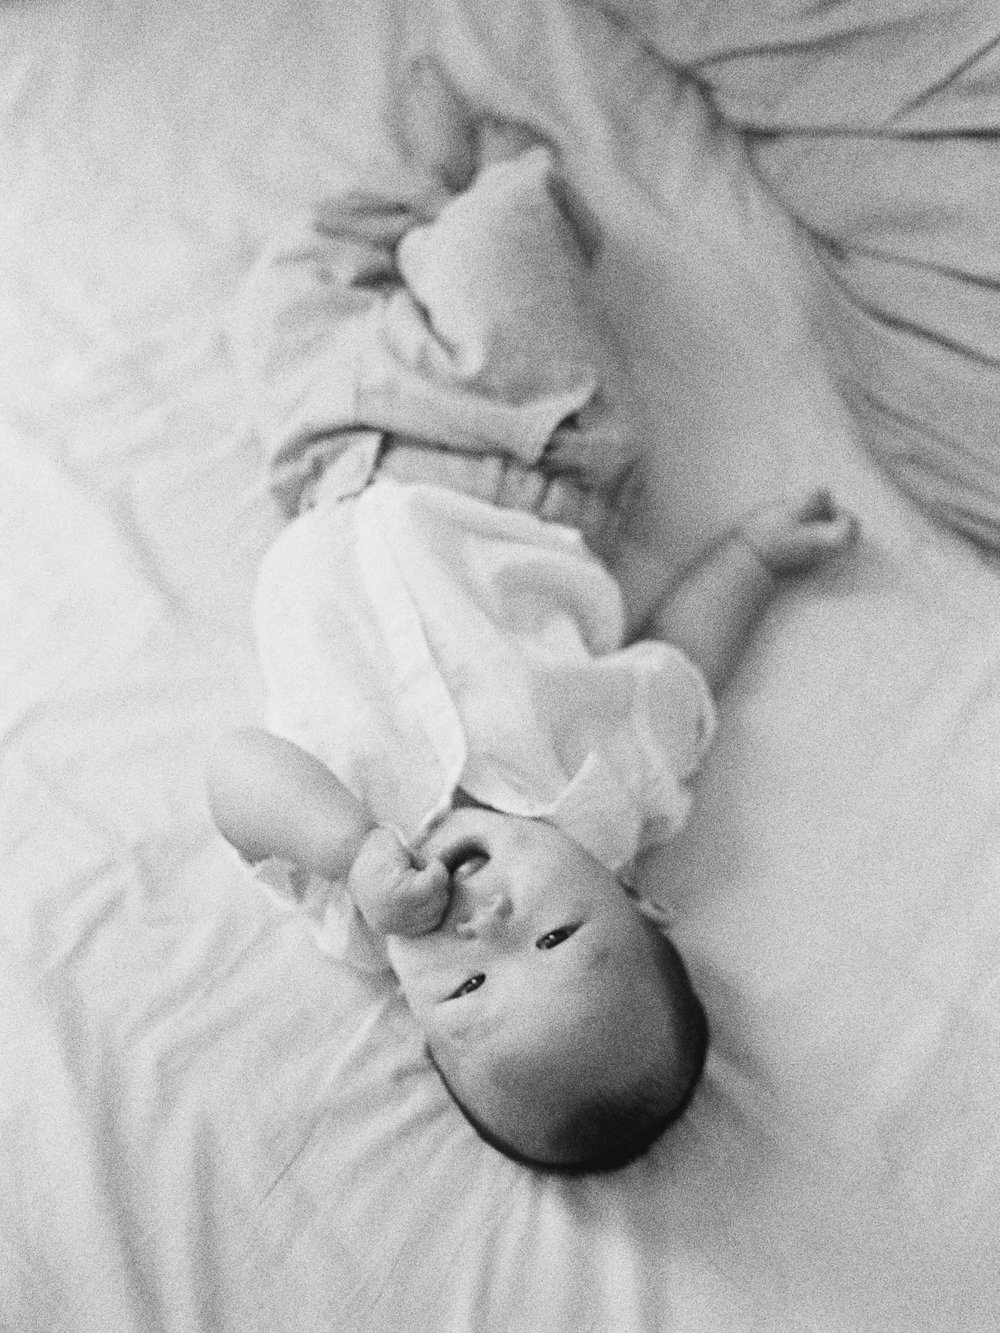 Cody-At Home-Simple-Baby Photography-8 Months Old-Studio June-Film Photography-Jakarta-34.jpg